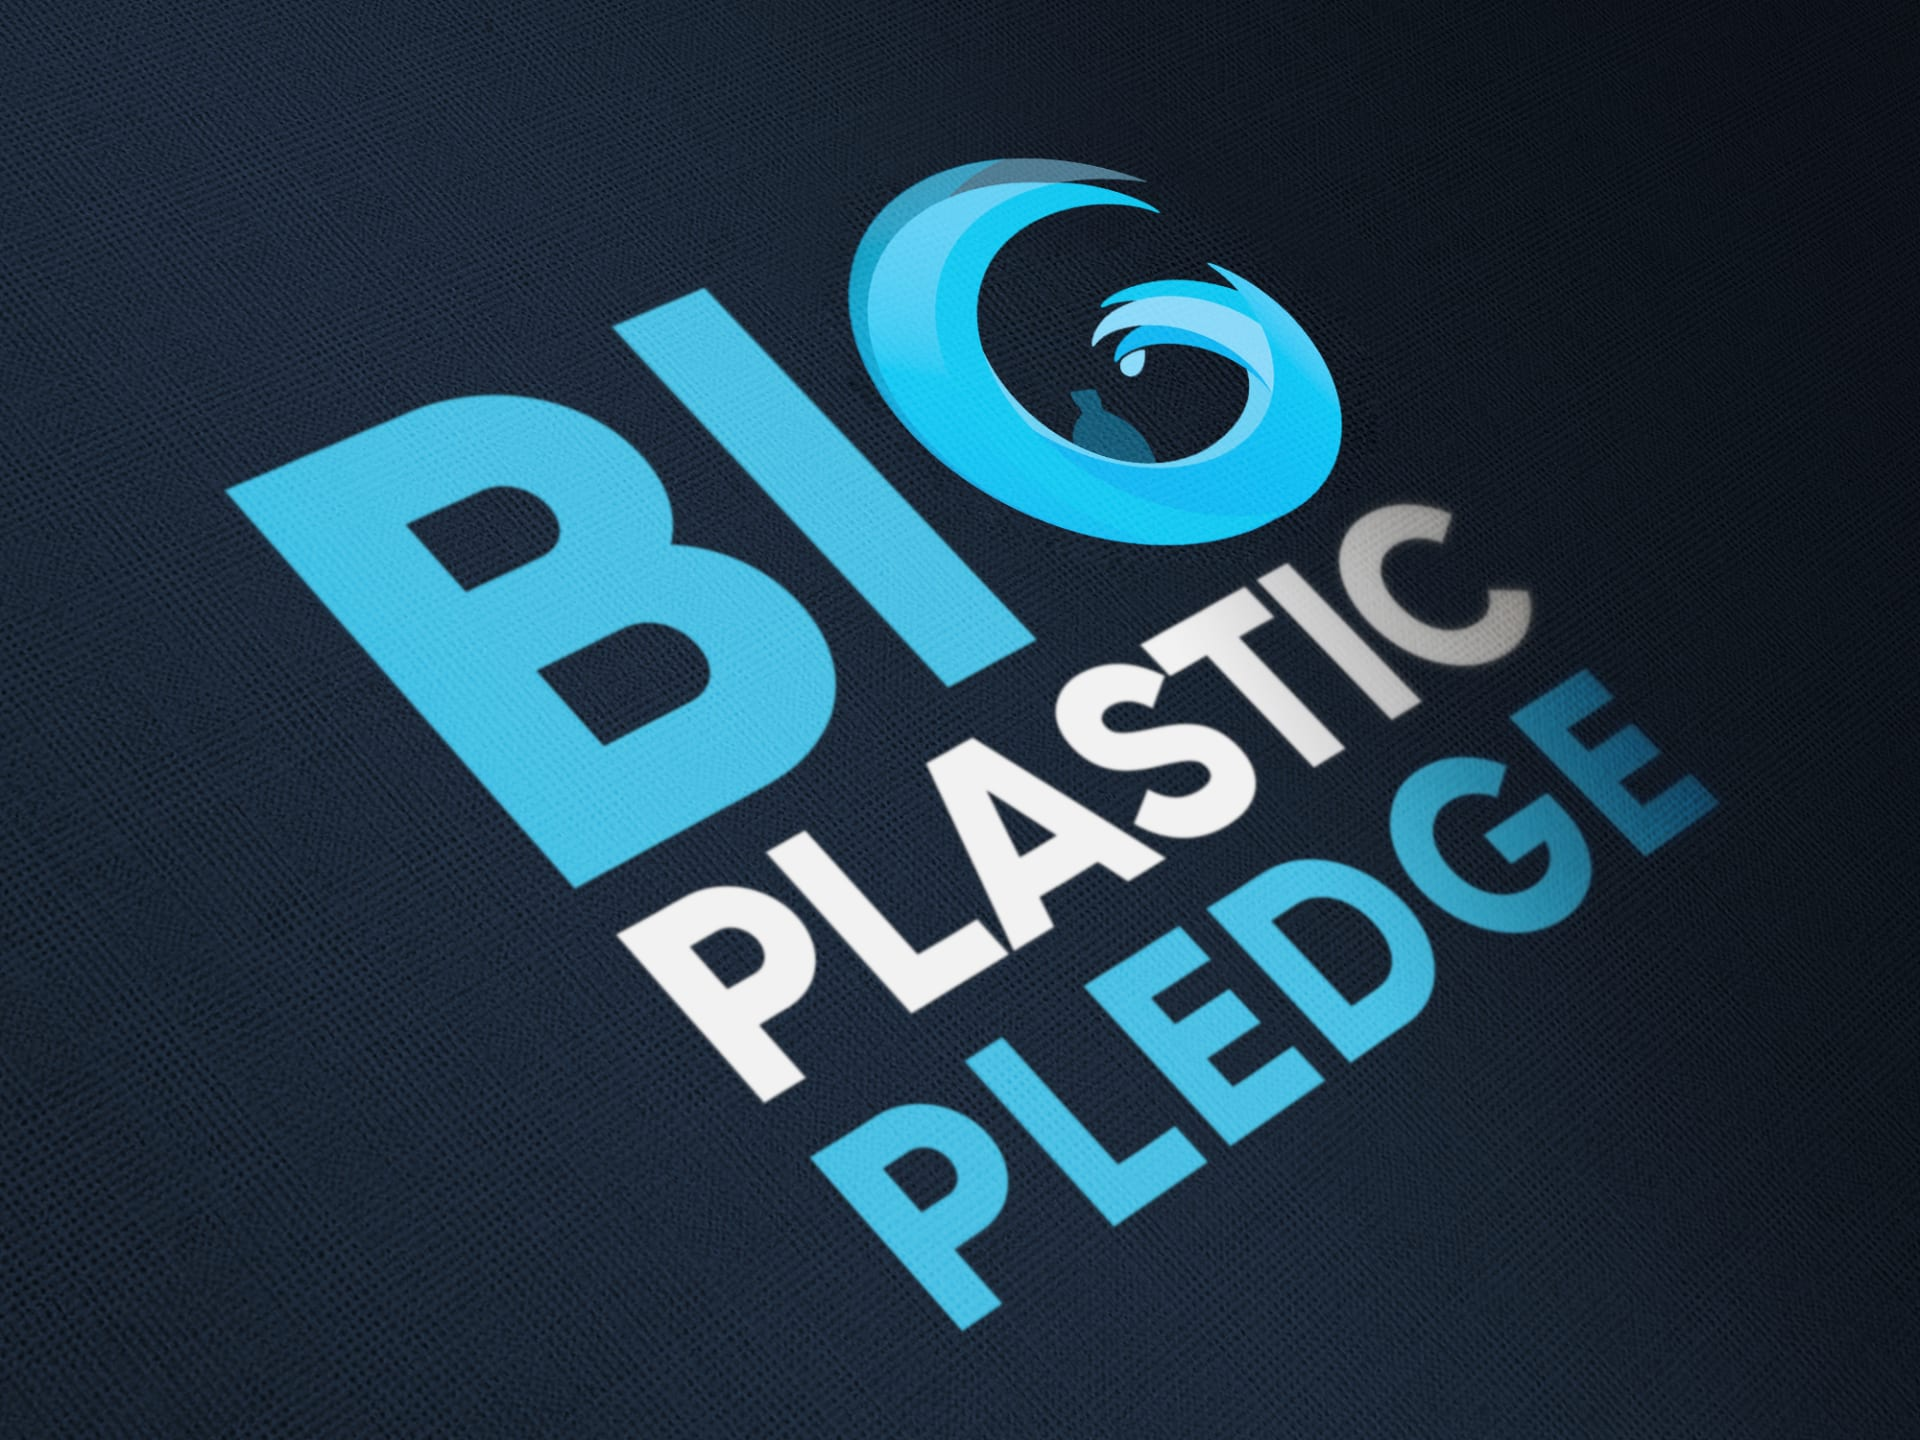 Plastic Pledge tshirt